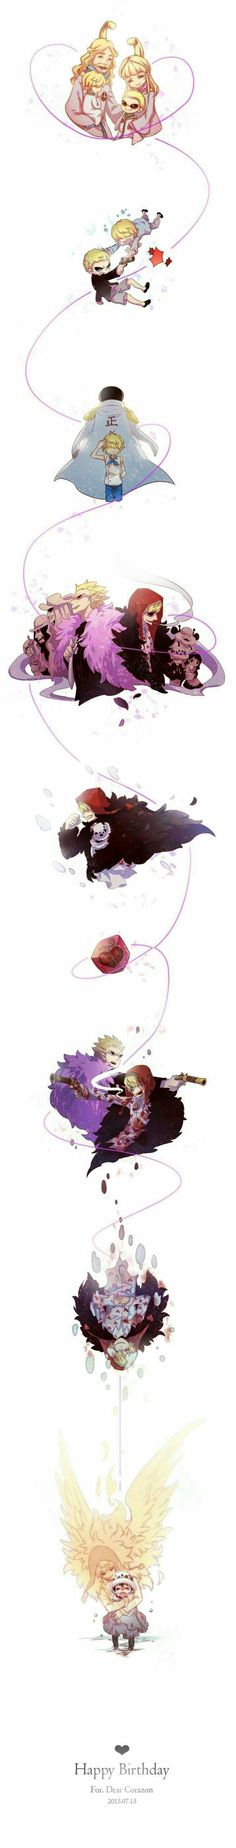 Happy Birthday Corazon, sad, text, crying, young, childhood, different ages, time lapse, timeline, characters, Law, Doflamingo, Donquixote family, Sengoku, Marine, angel, ghost, spirit, wings; One Piece